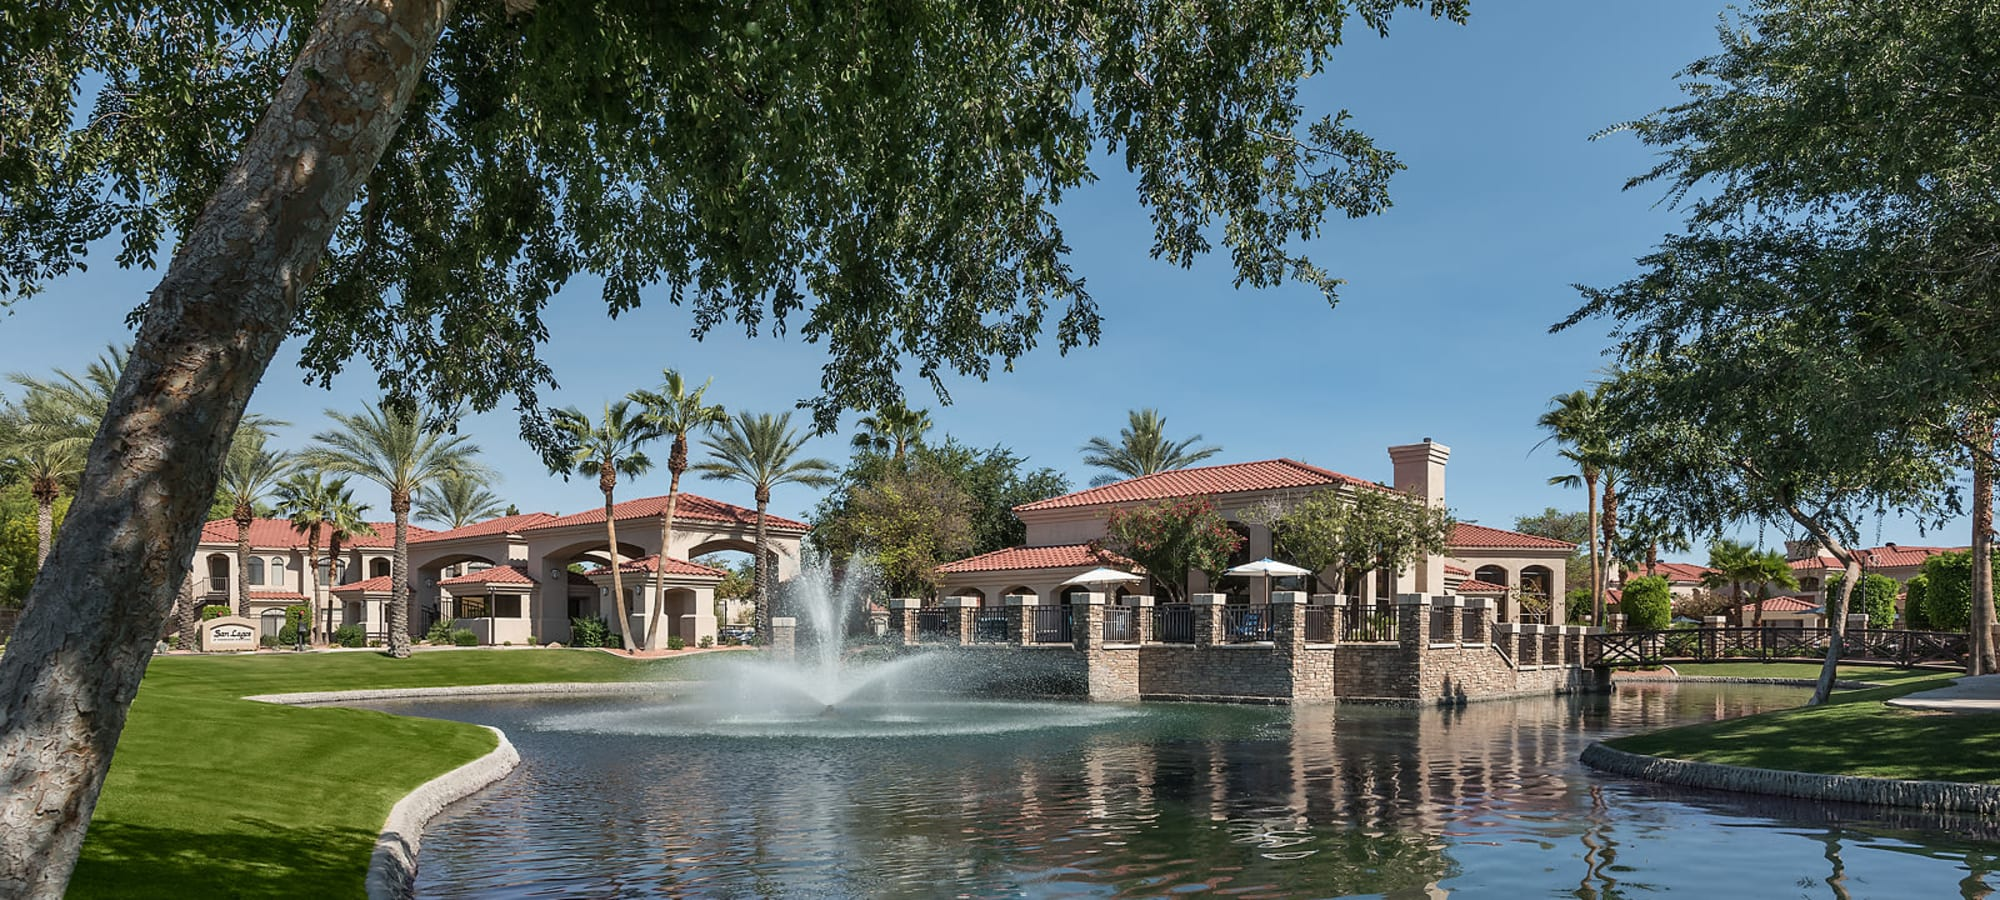 Community clubhouse exterior at San Lagos in Glendale, Arizona